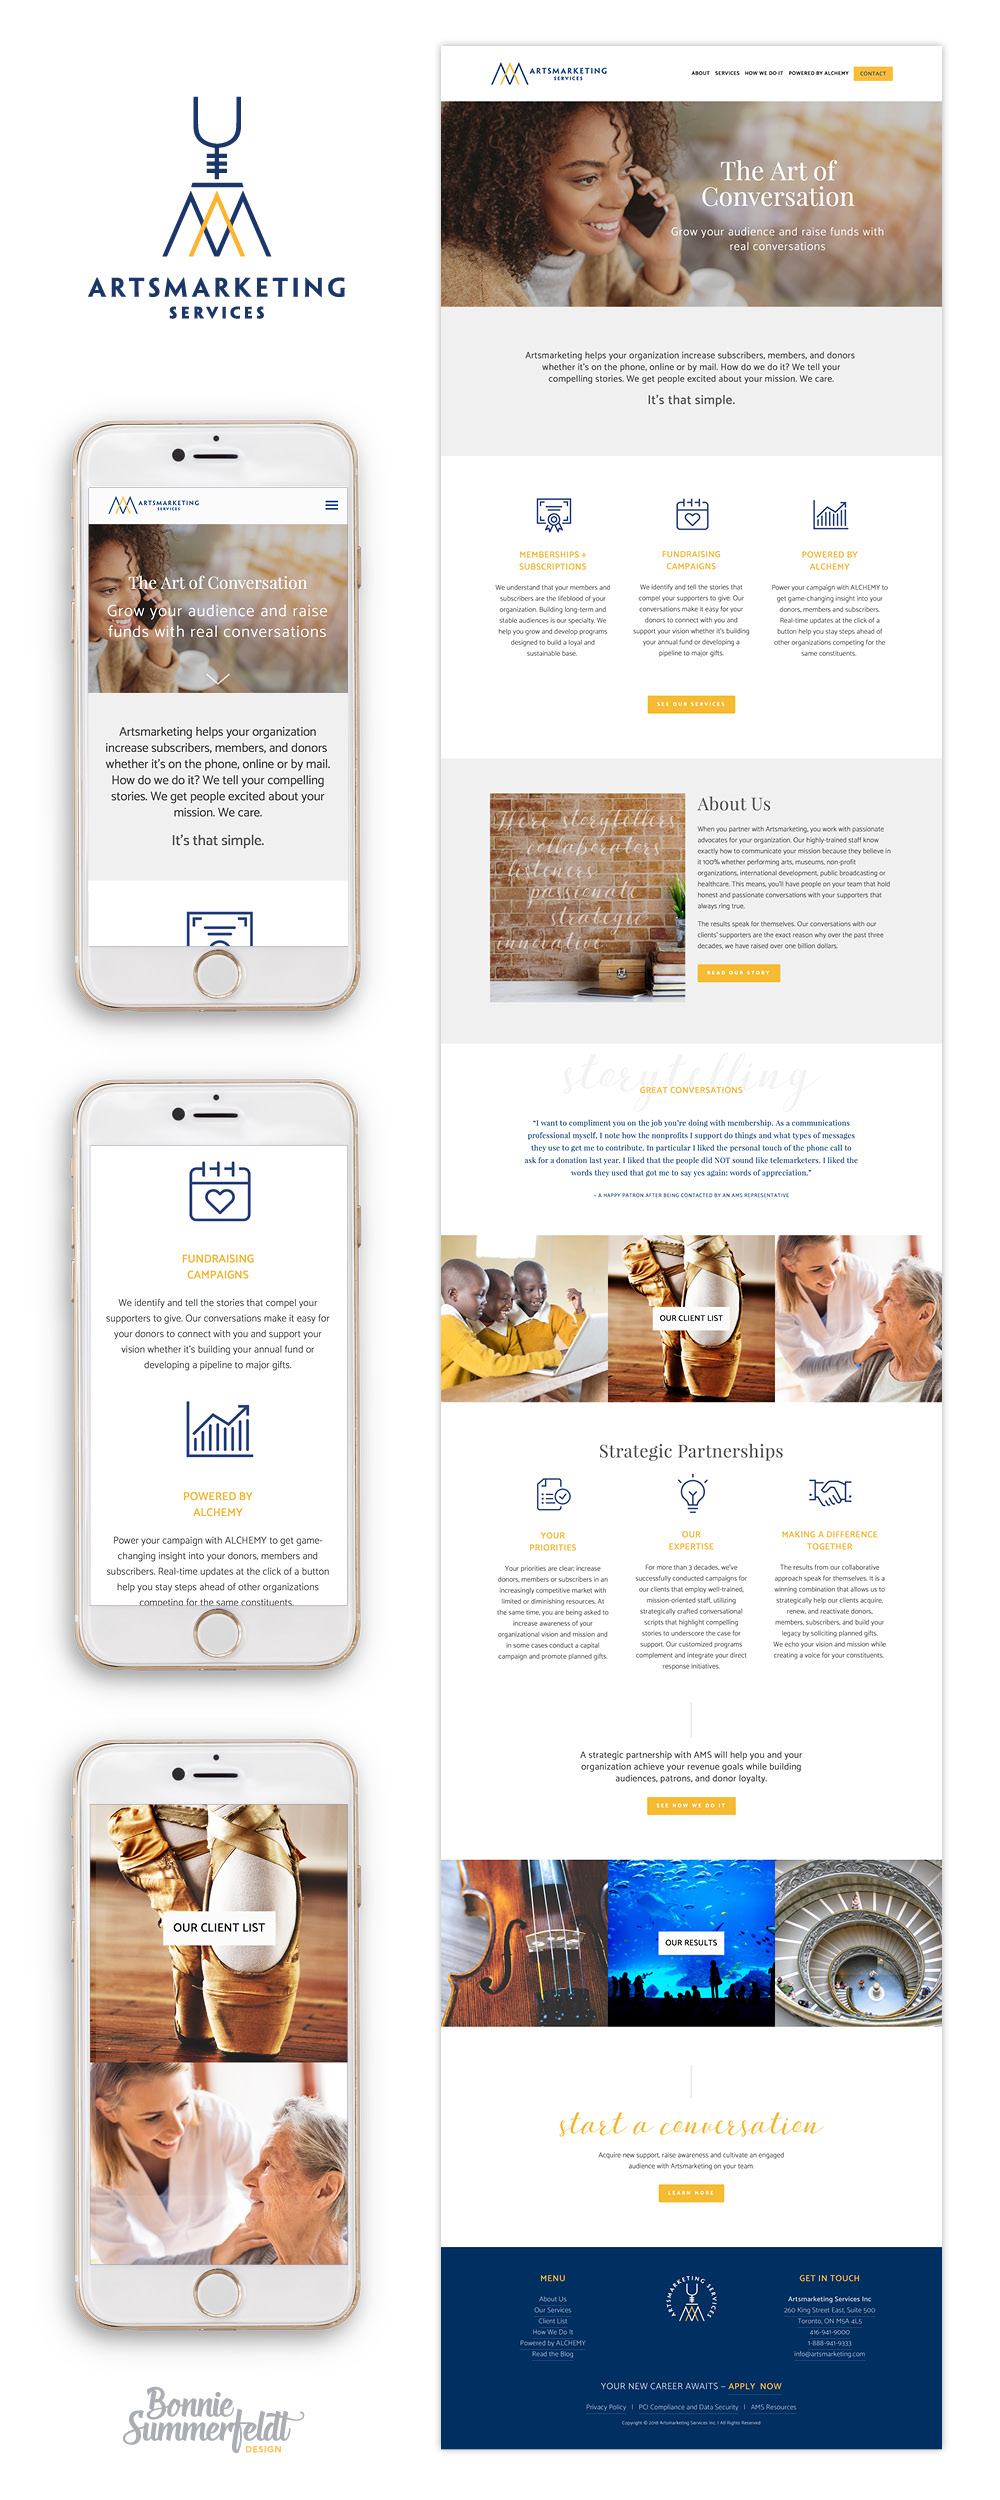 Responsive website design is a must with half of your clients looking you up via mobile now. Clients are busy so website copy must be shortened with less about features and more about results. Squarespace web design and logo refresh by Bonnie Summerfeldt Design – brand and website design for professional services such as consultants, therapists and advisors where credibility counts. https://bonniesummerfeldt.com